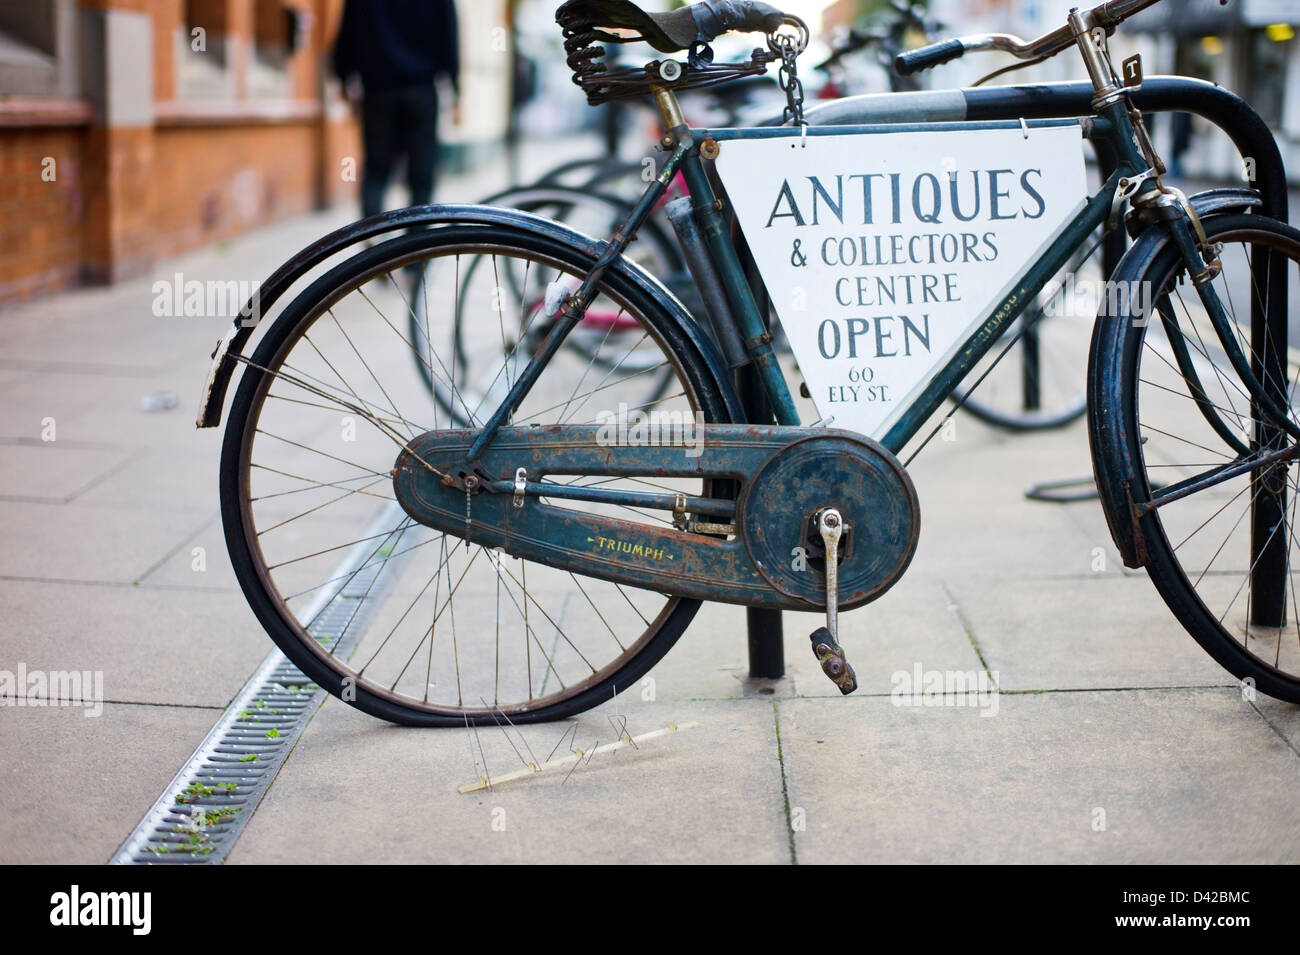 Old bicycle advertizing an antiques and collectors centre Stratford Upon Avon Warwickshire UK - Stock Image